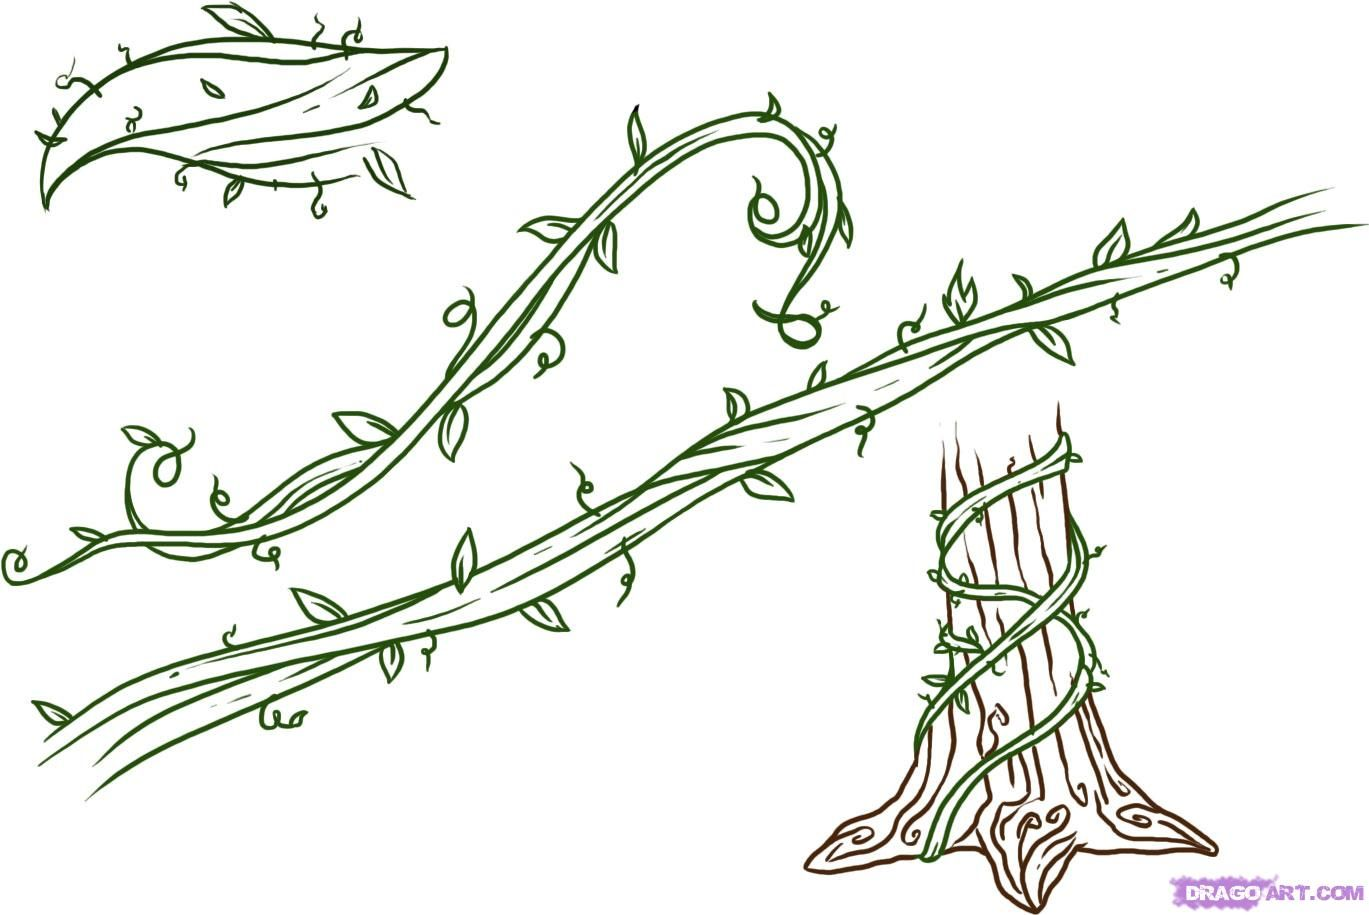 Drawing Lines Qml : Drawings of flowers leaves and vines to draw step